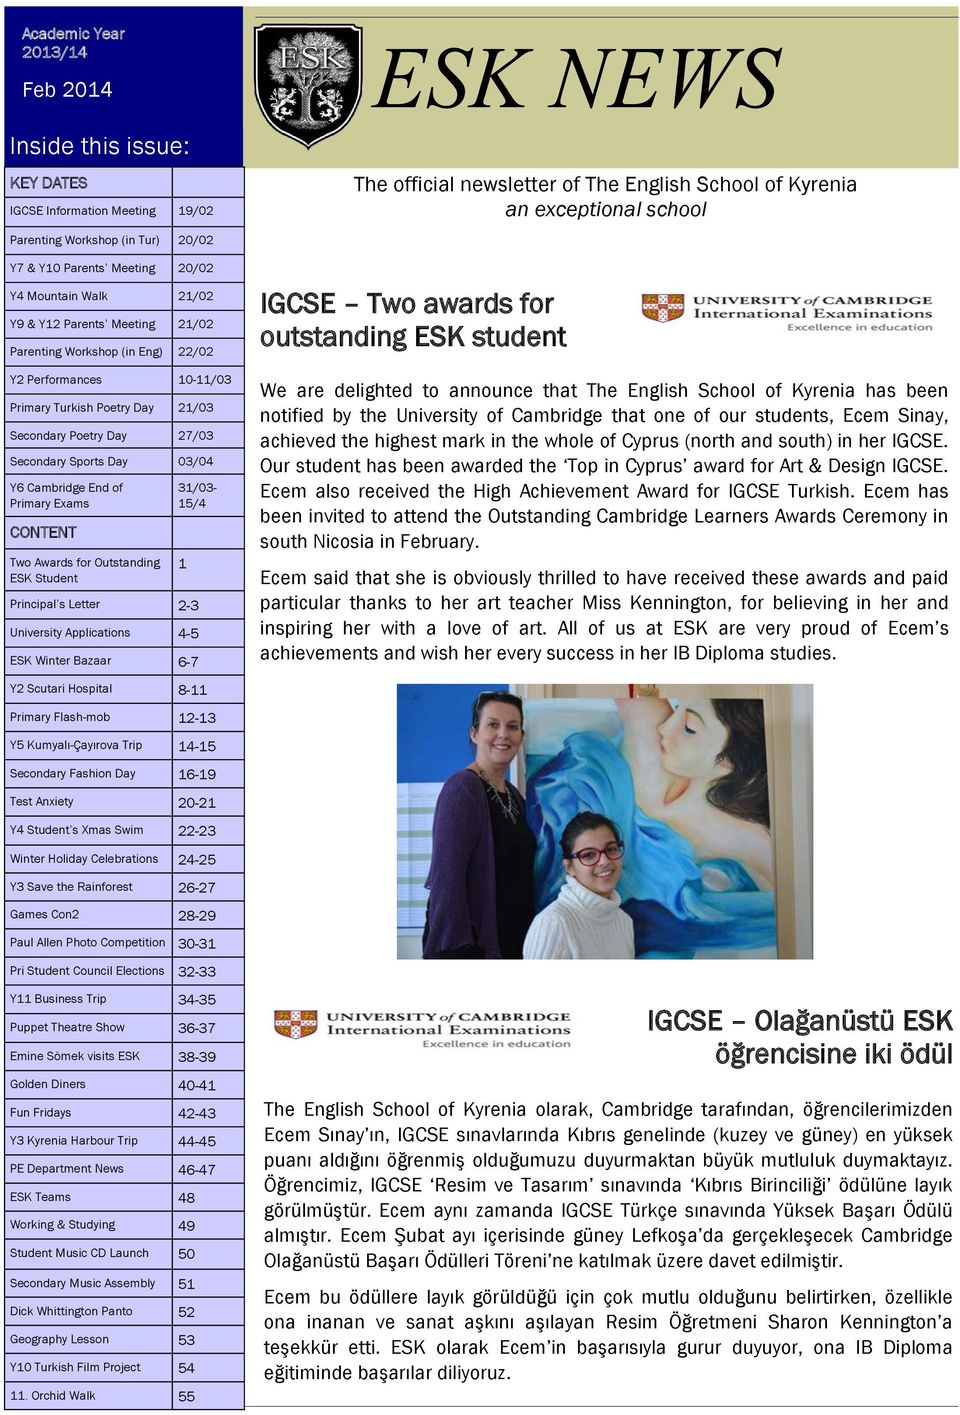 CONTENT Two Awards for Outstanding ESK Student 31/03-15/4 Principal s Letter 2-3 University Applications 4-5 ESK Winter Bazaar 6-7 1 ESK NEWS The official newsletter of The English School of Kyrenia